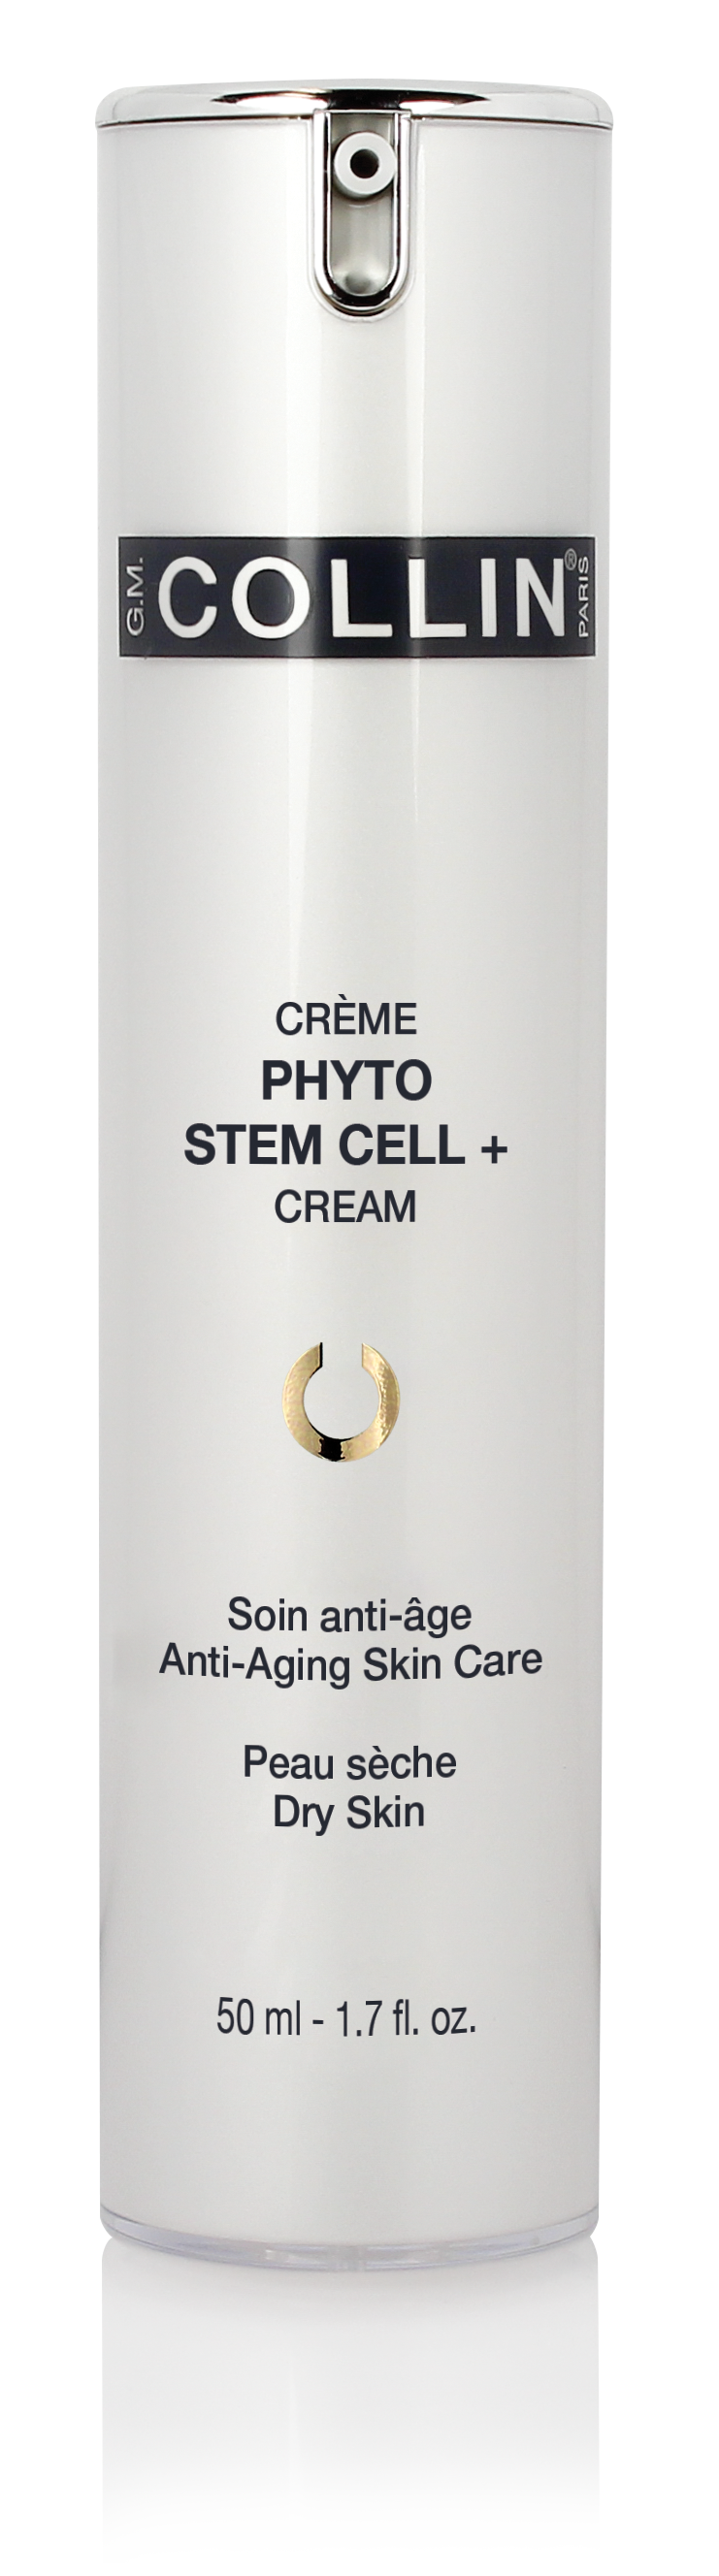 Creme phyto stem cell